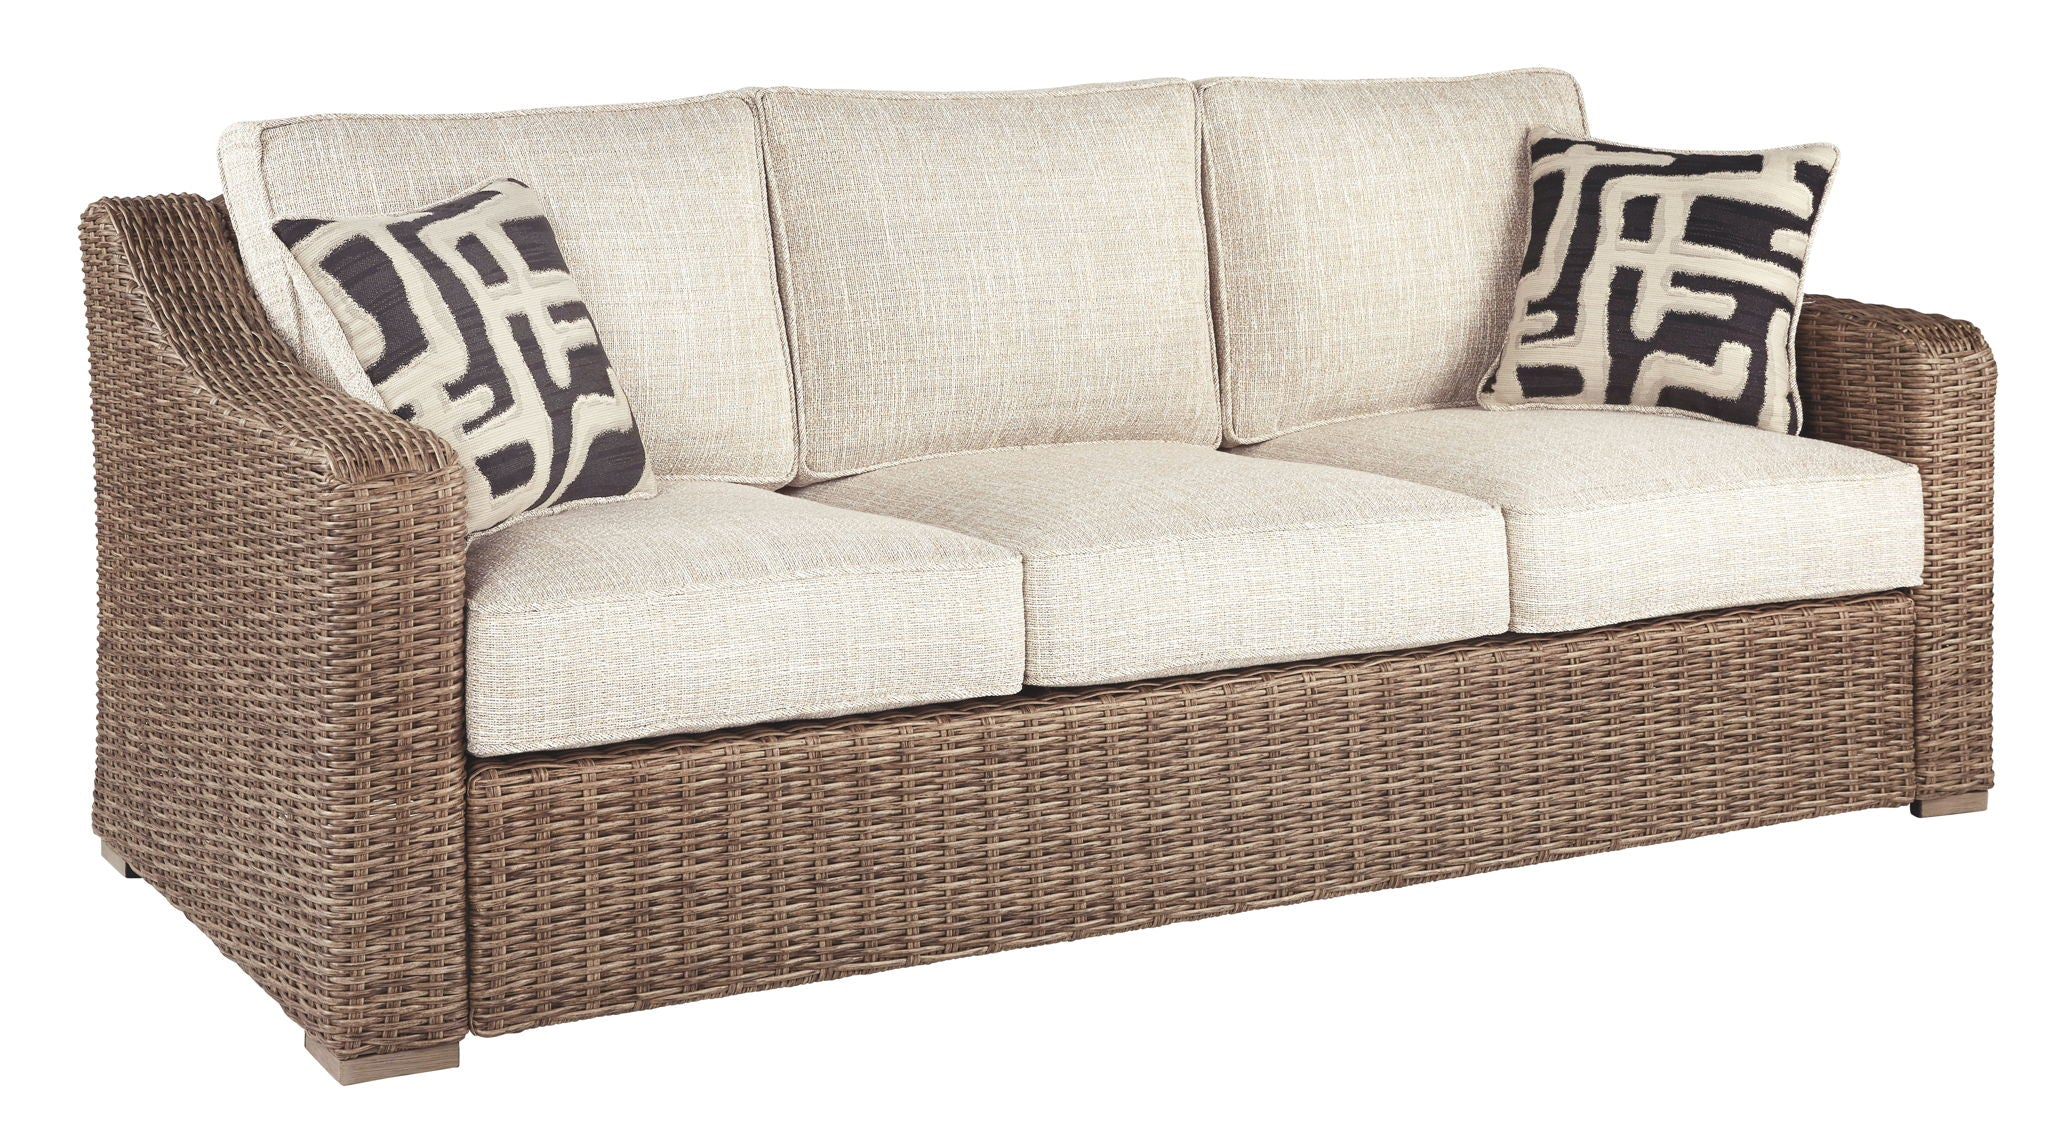 Beachcroft Sofa with Cushion | Calgary's Furniture Store